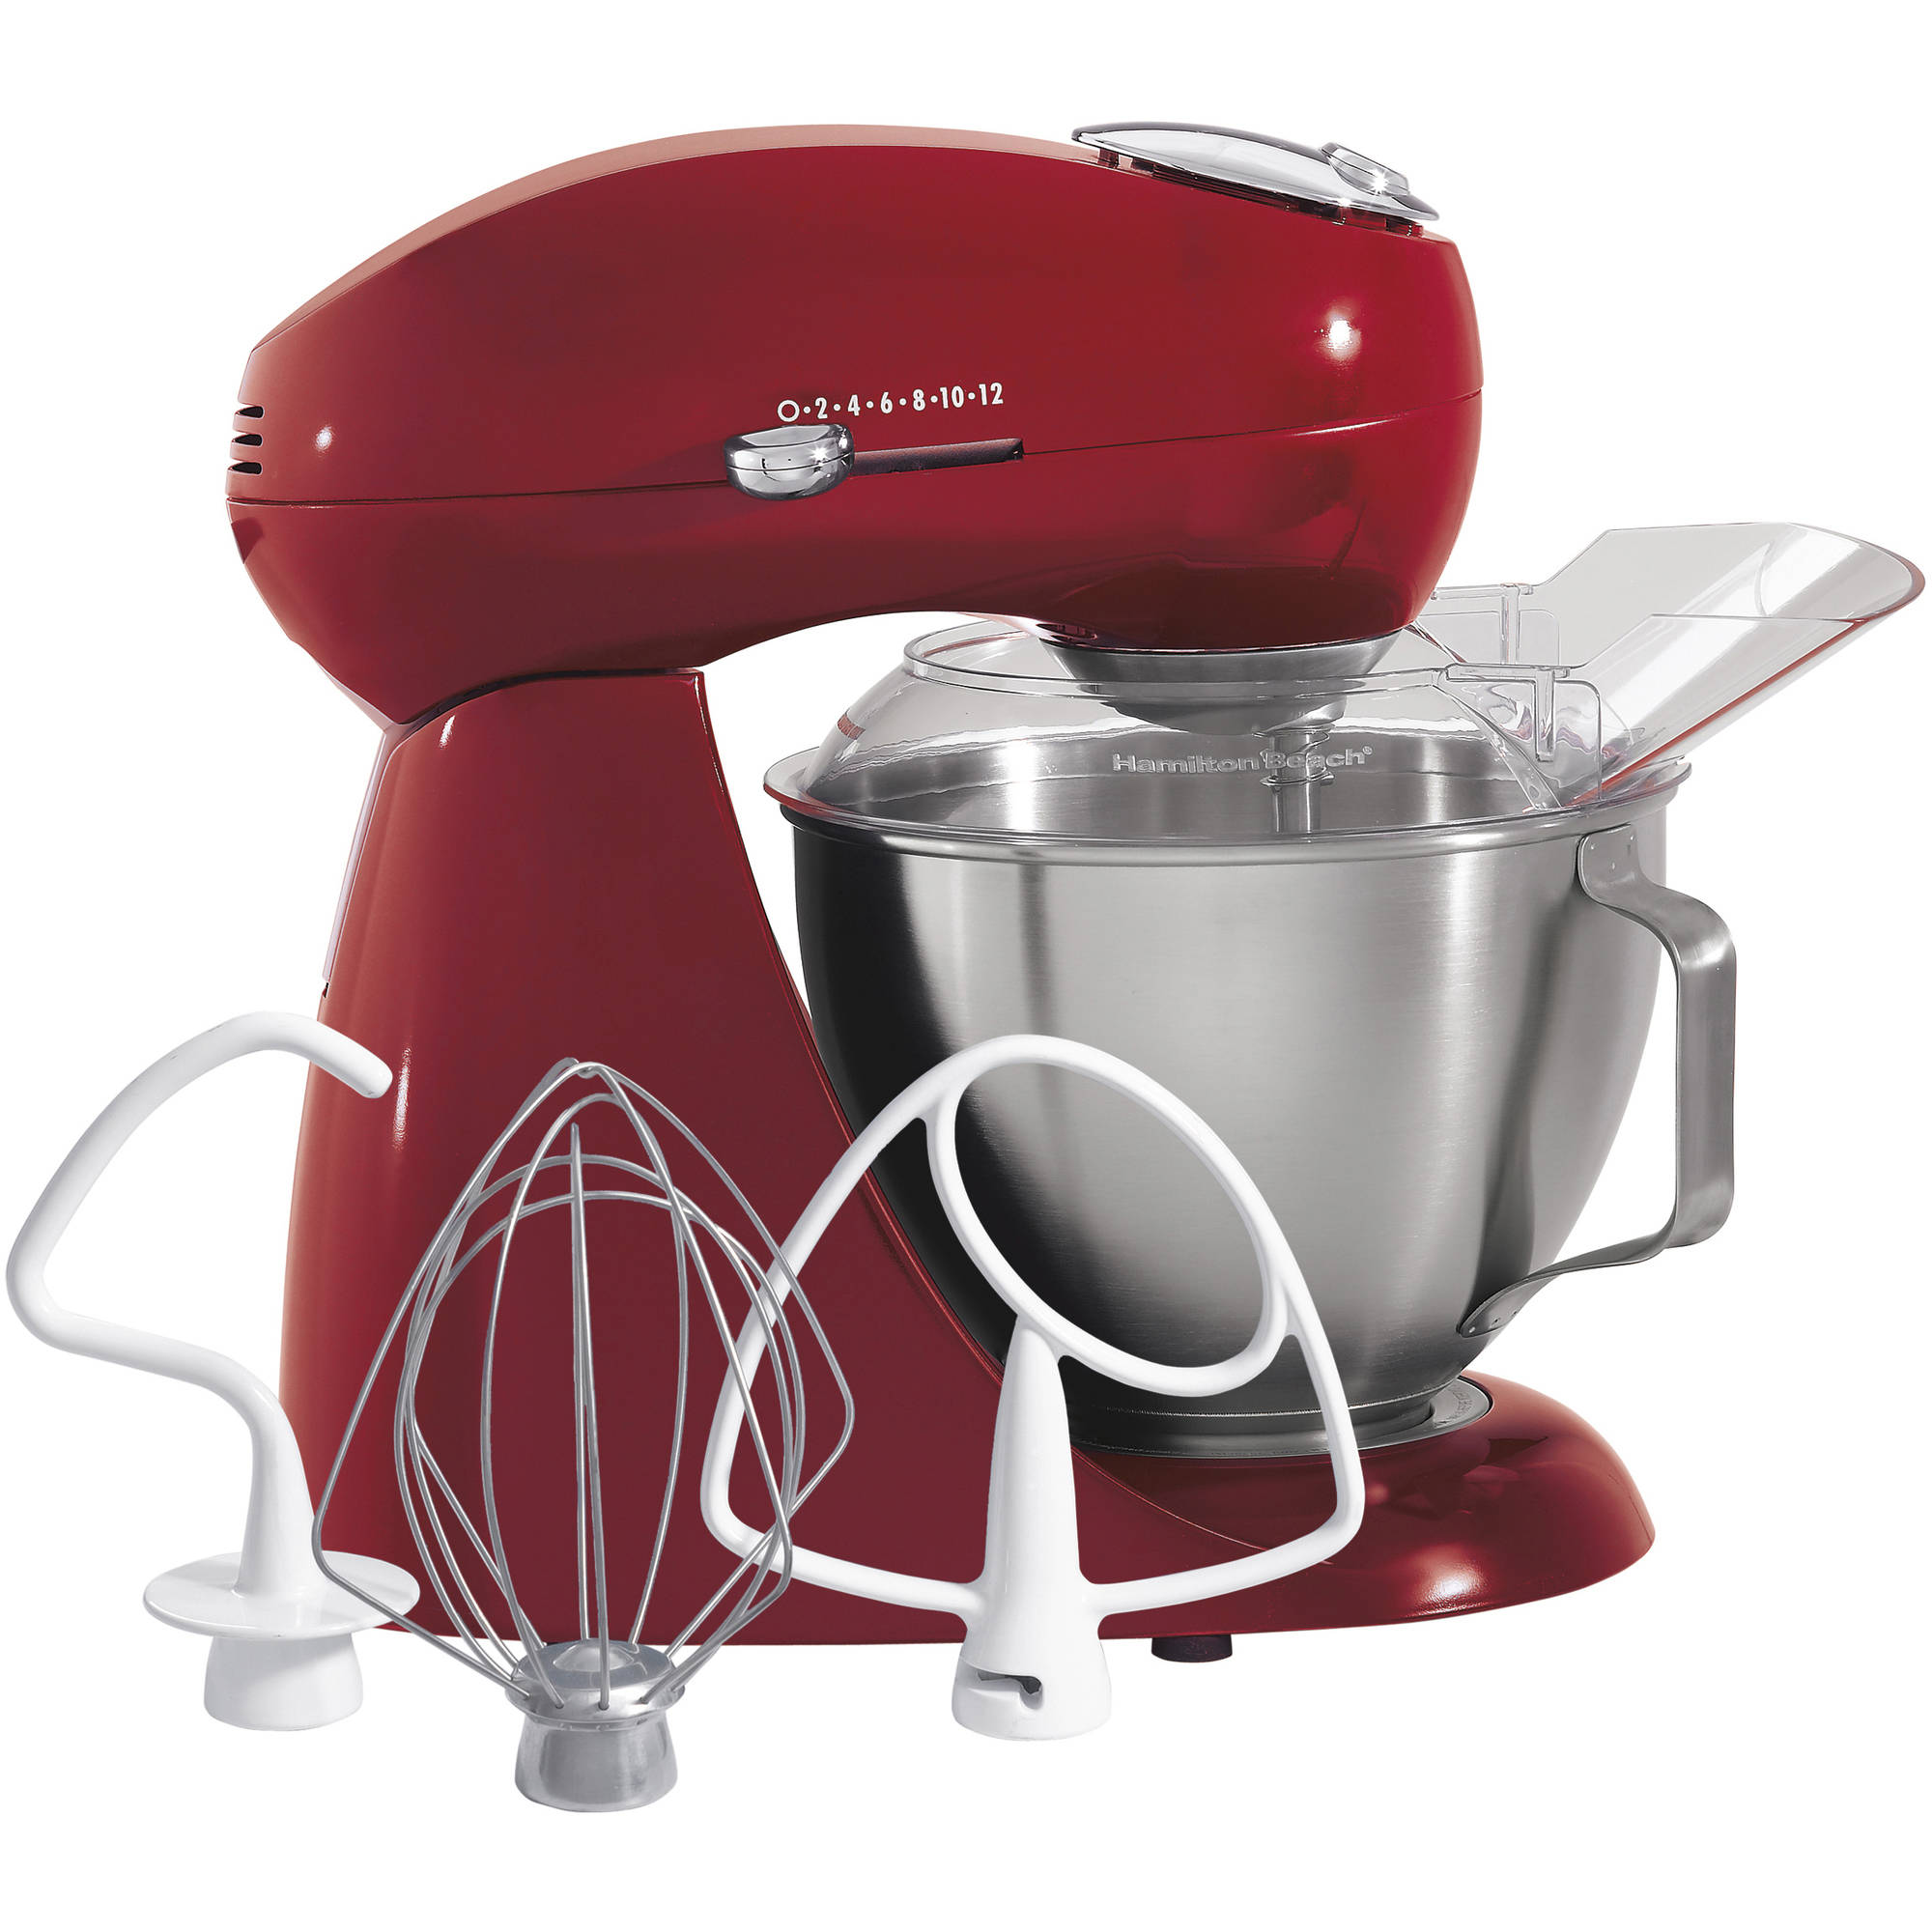 Hamilton Beach Electric 4.5 Quart Stand Mixer | Model# 63232 - Walmart.com